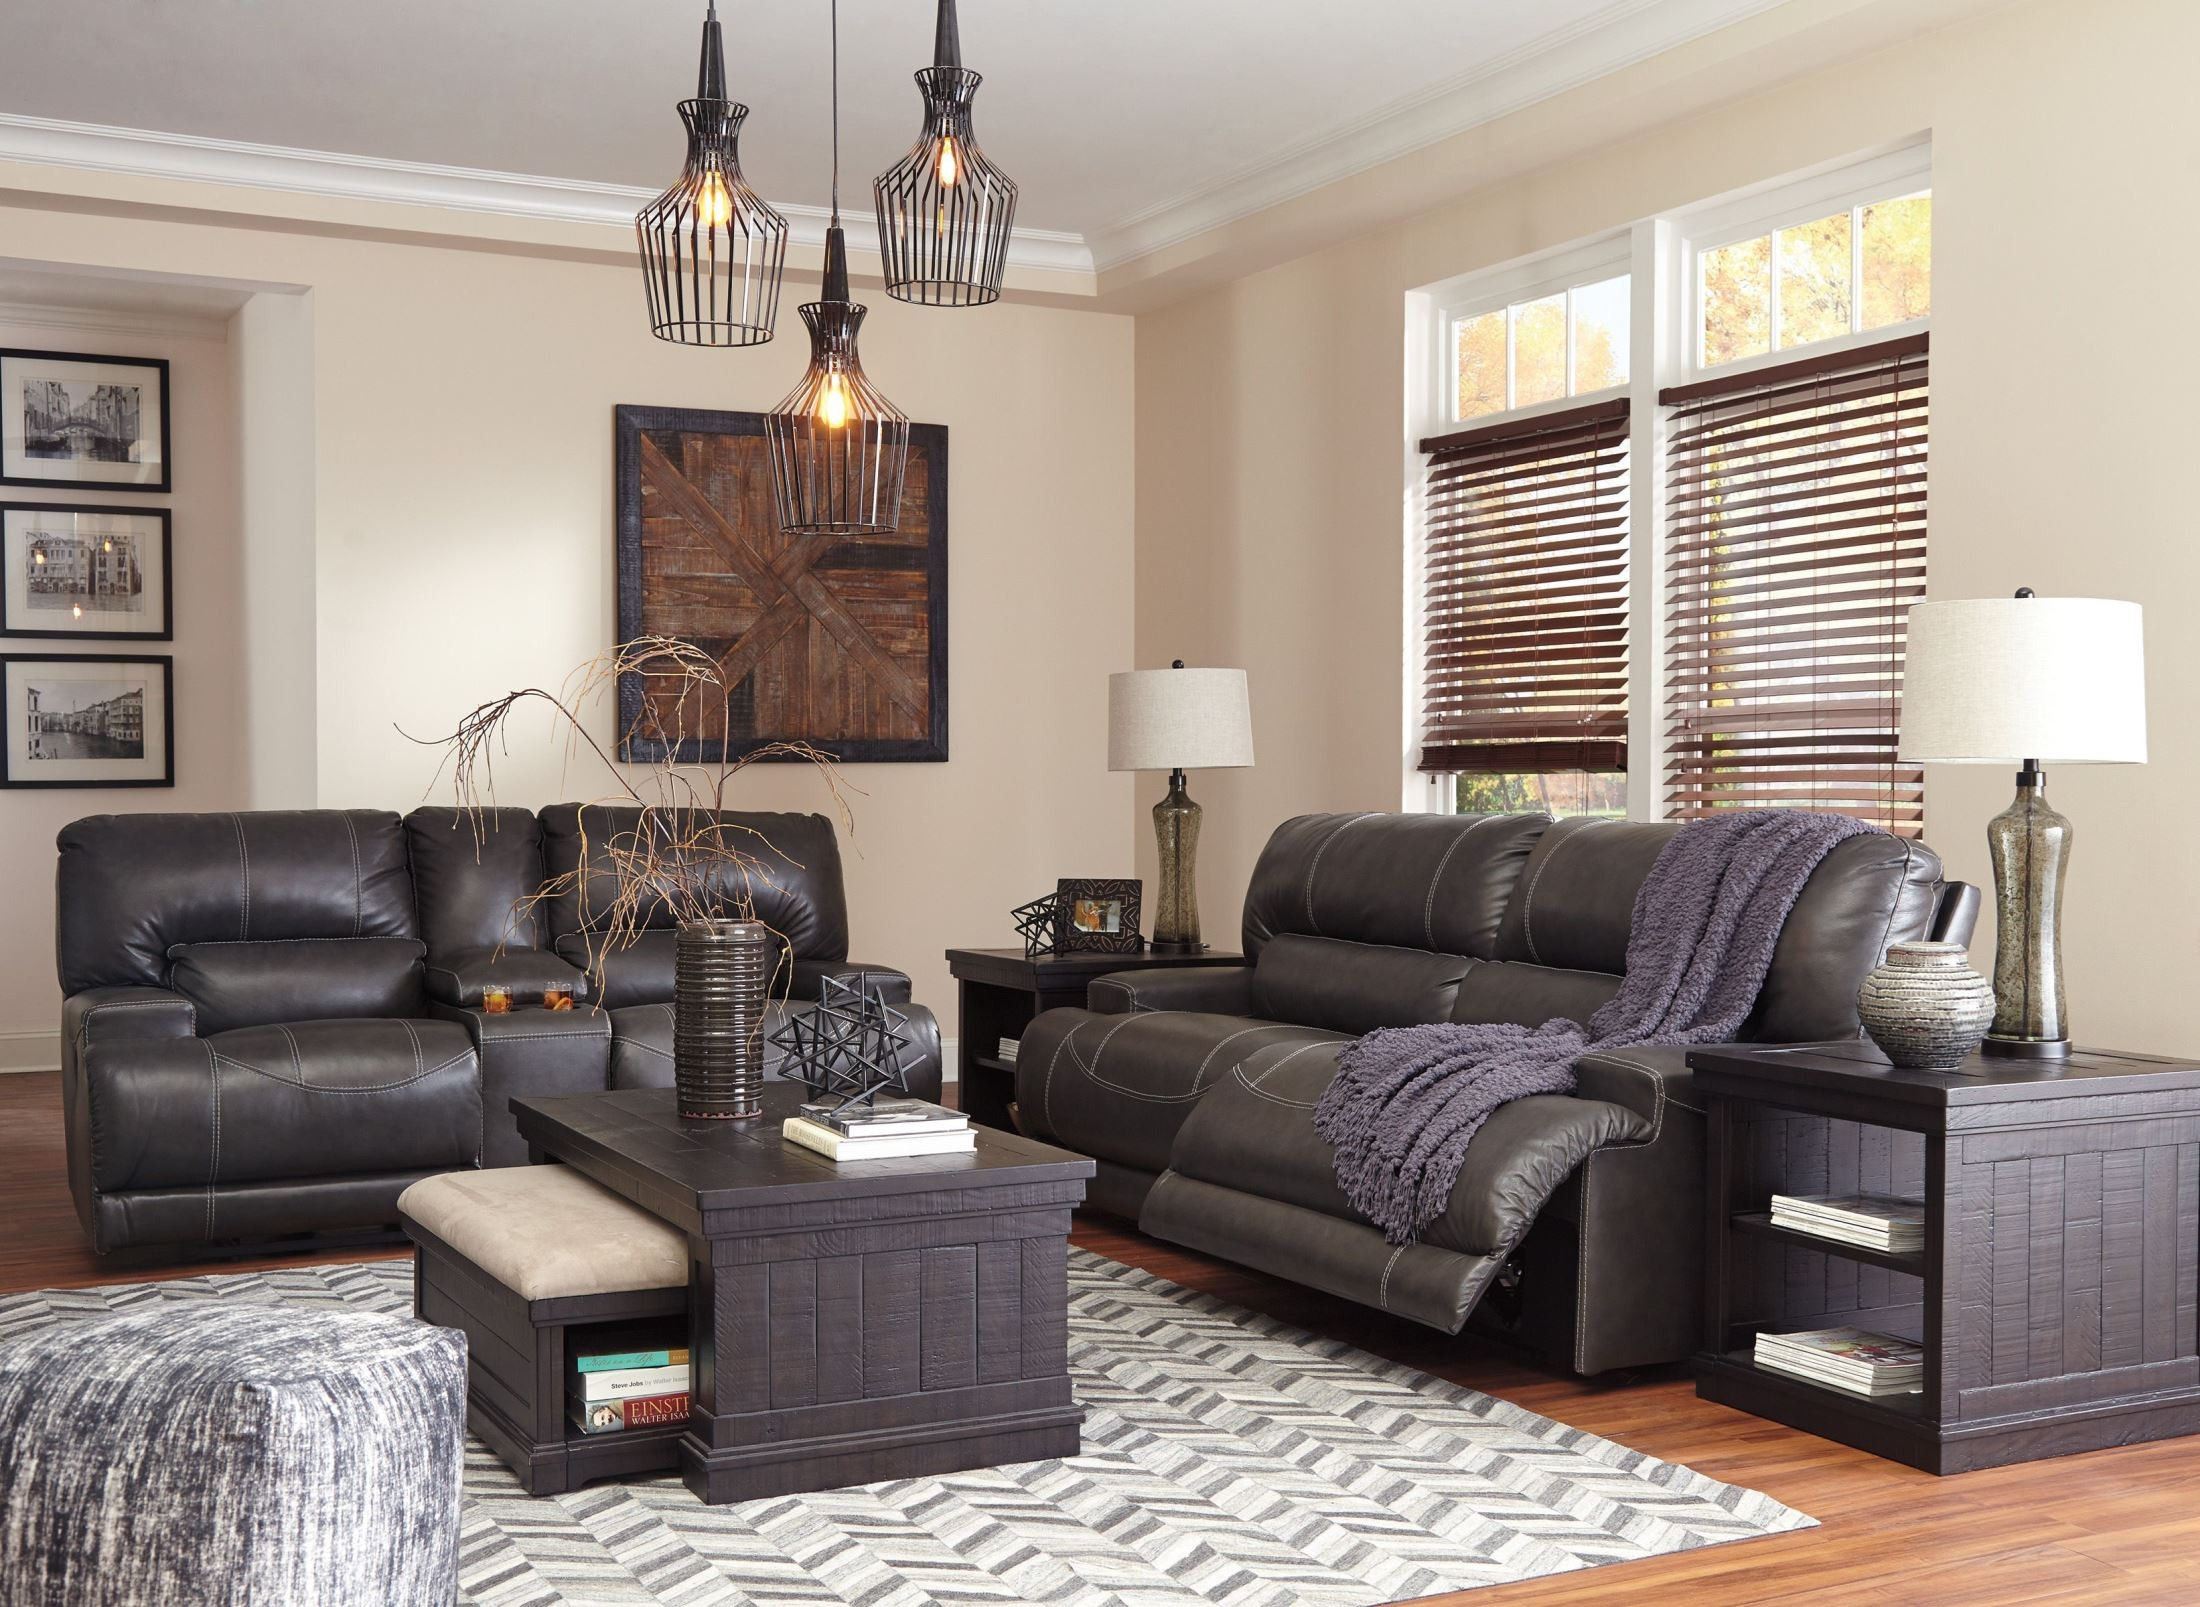 Mccaskill gray reclining living room set 1786040